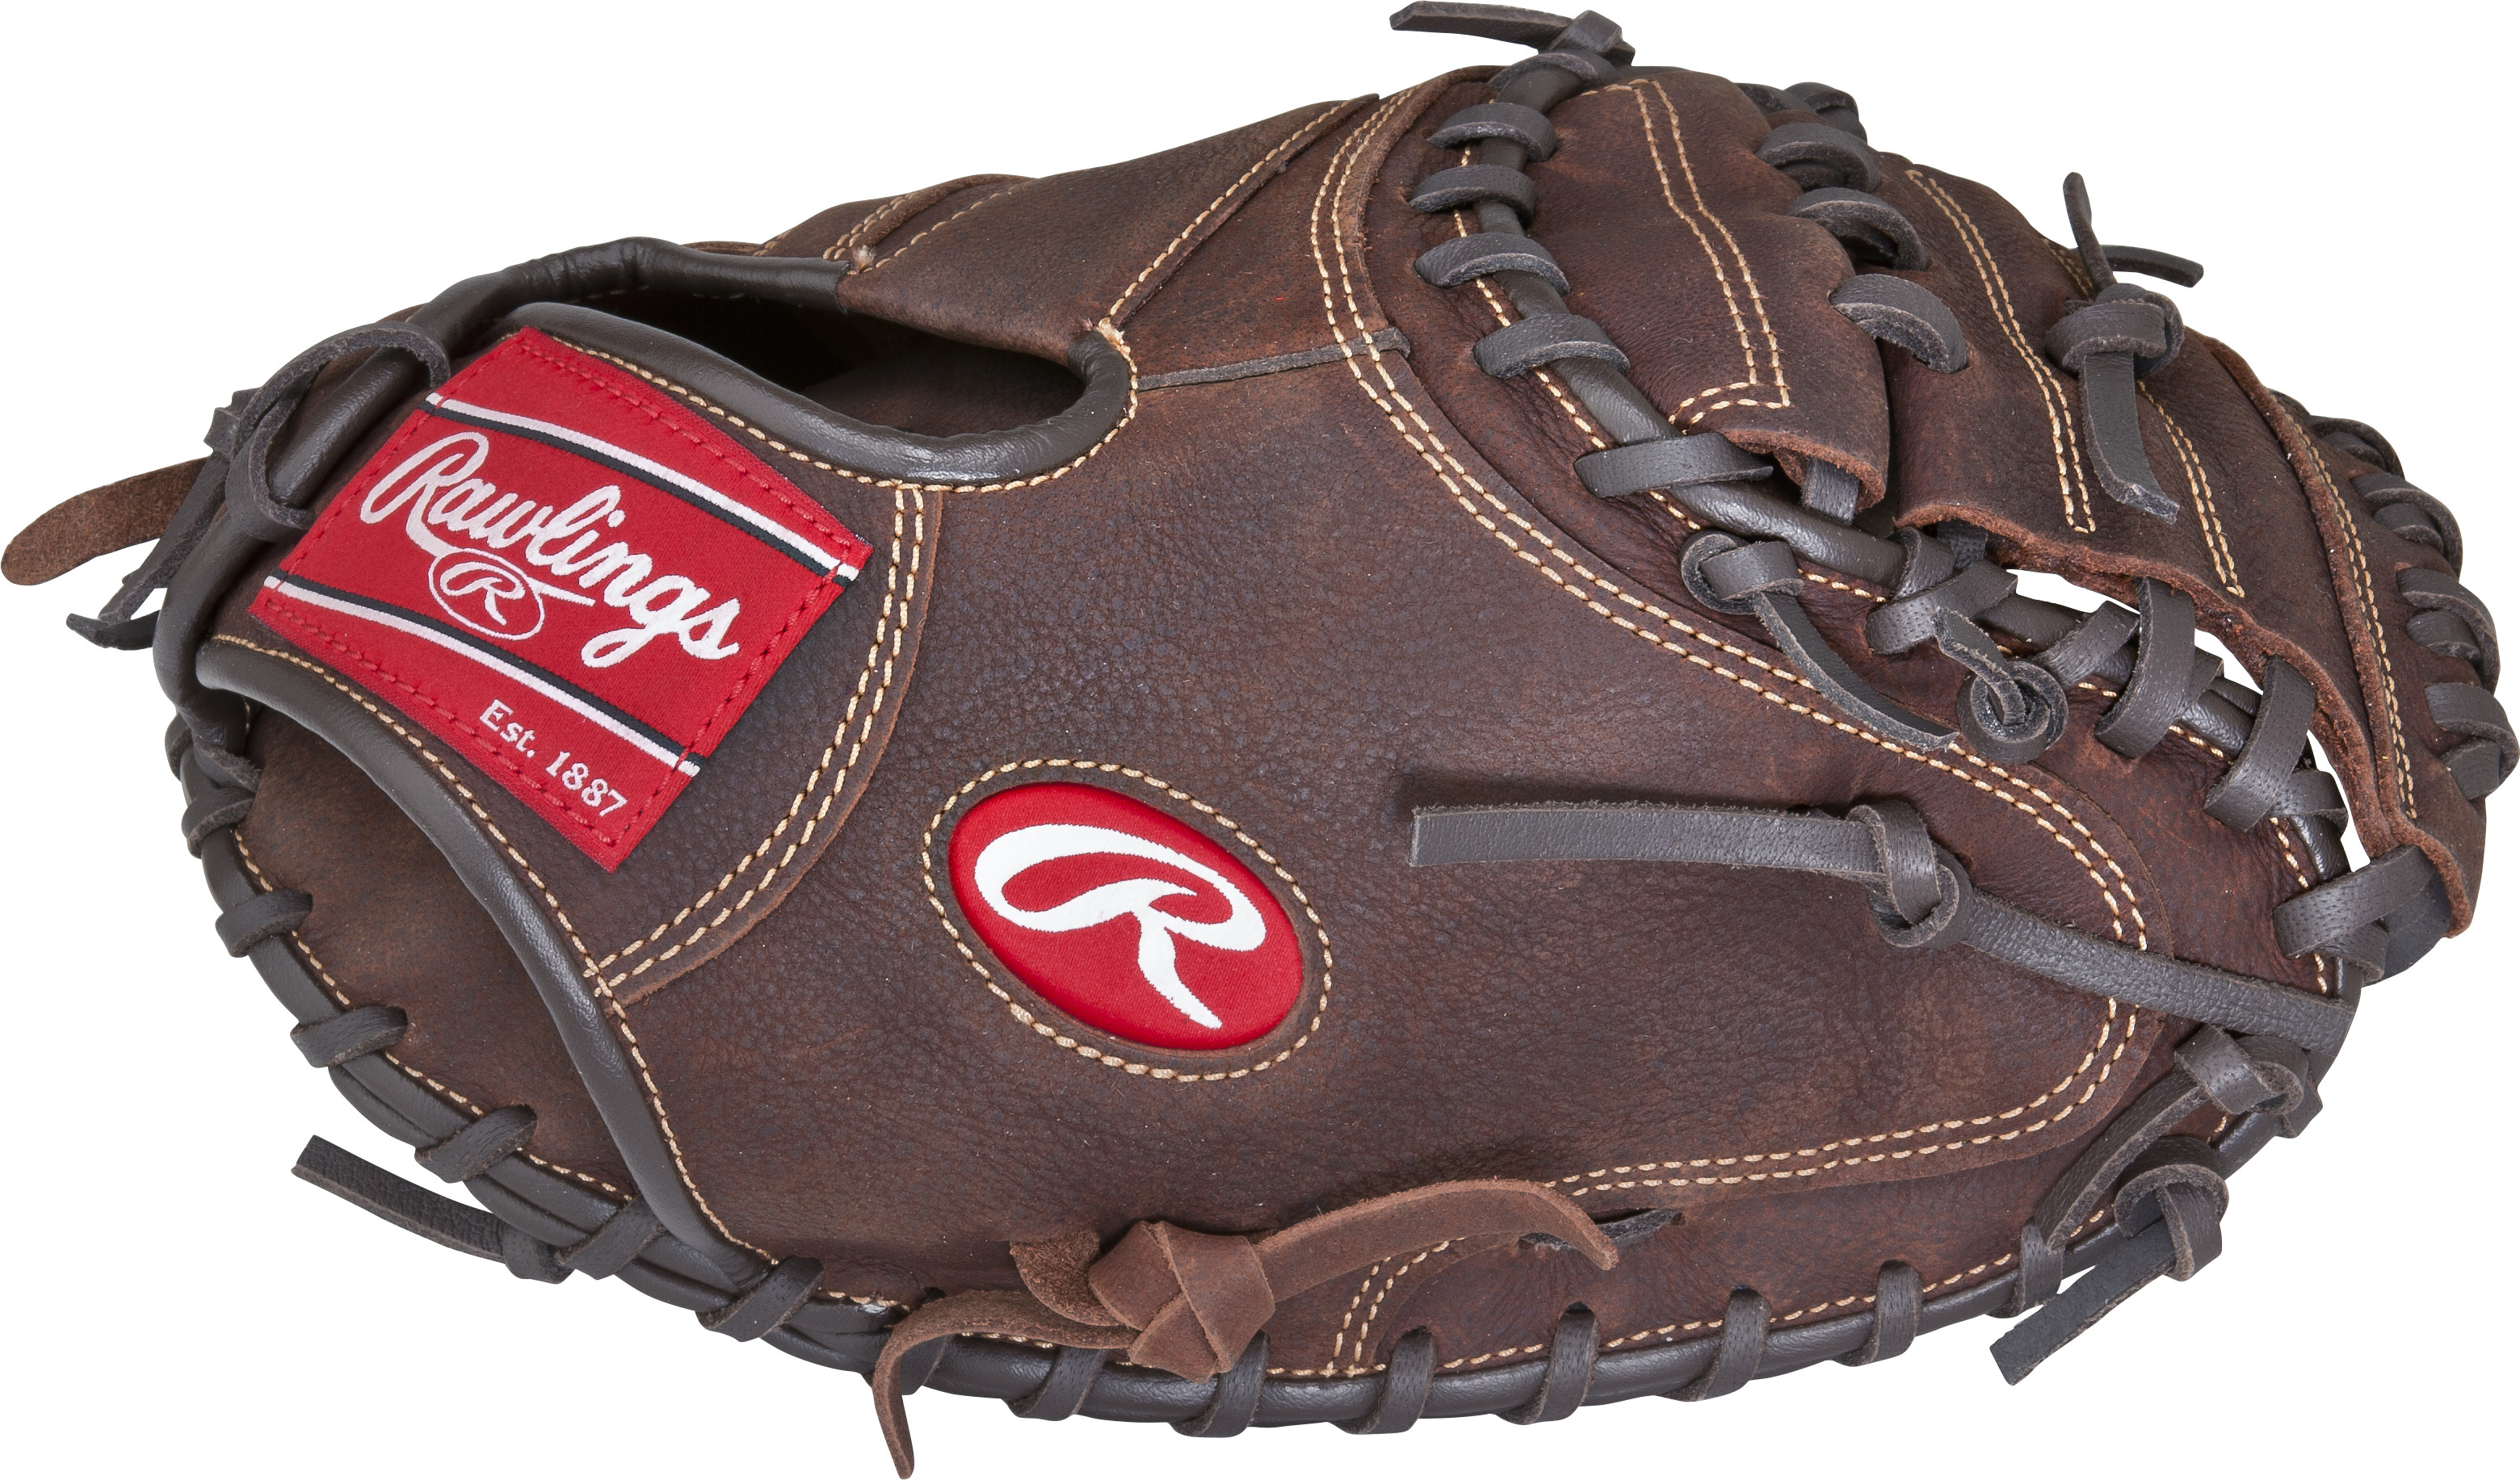 http://www.bestbatdeals.com/images/gloves/rawlings/PCM30_thumb.jpg